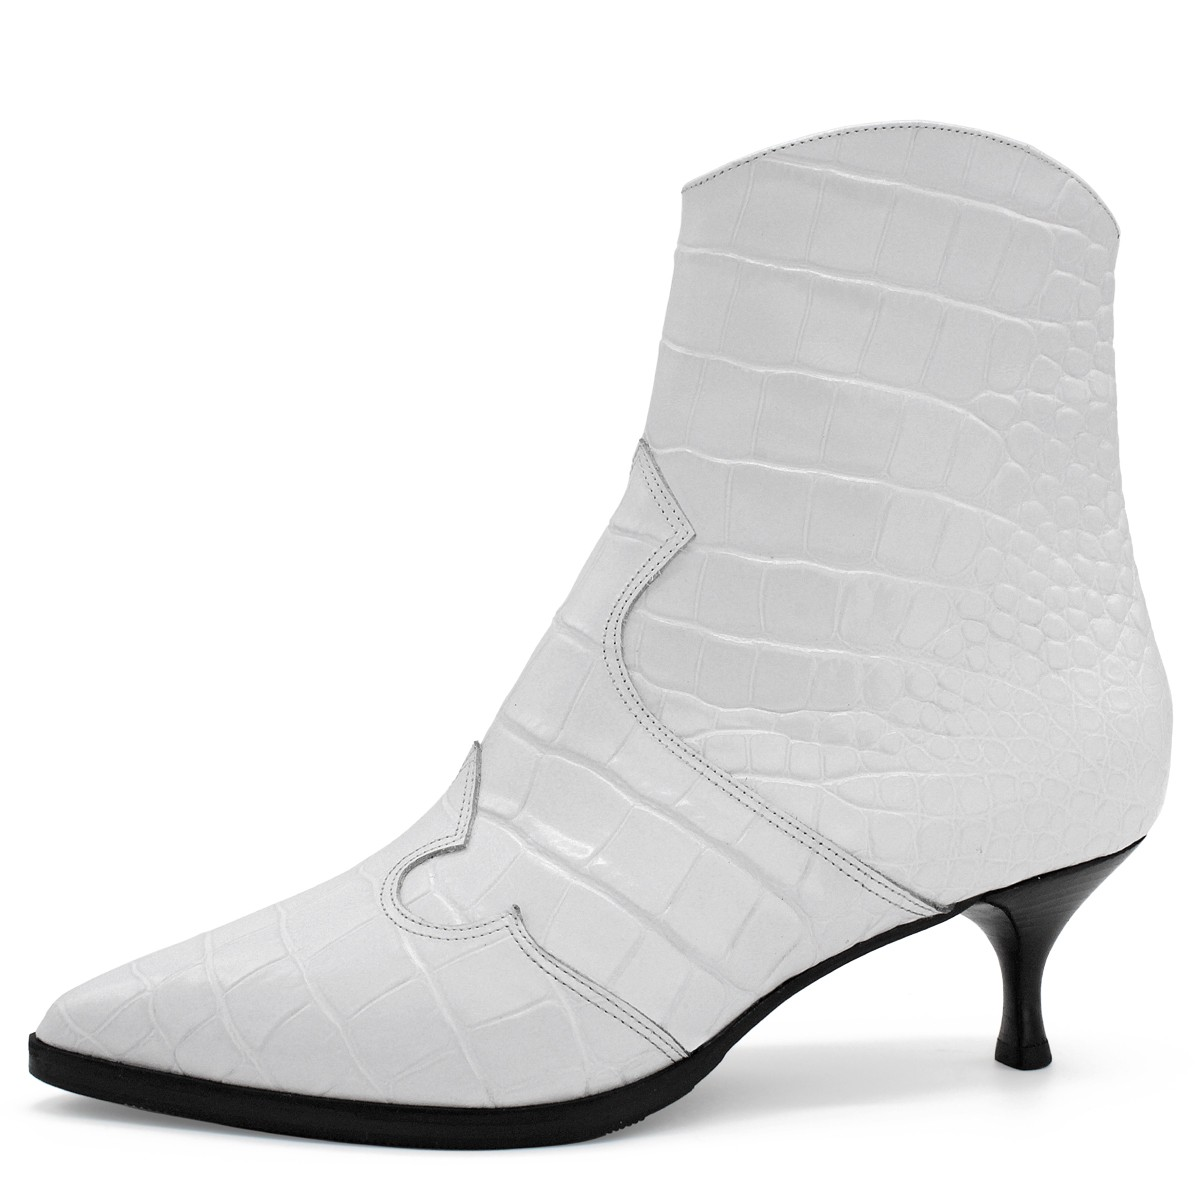 WHITE CROCO WESTERN ANKLE BOOTS ON SPOOL HEEL